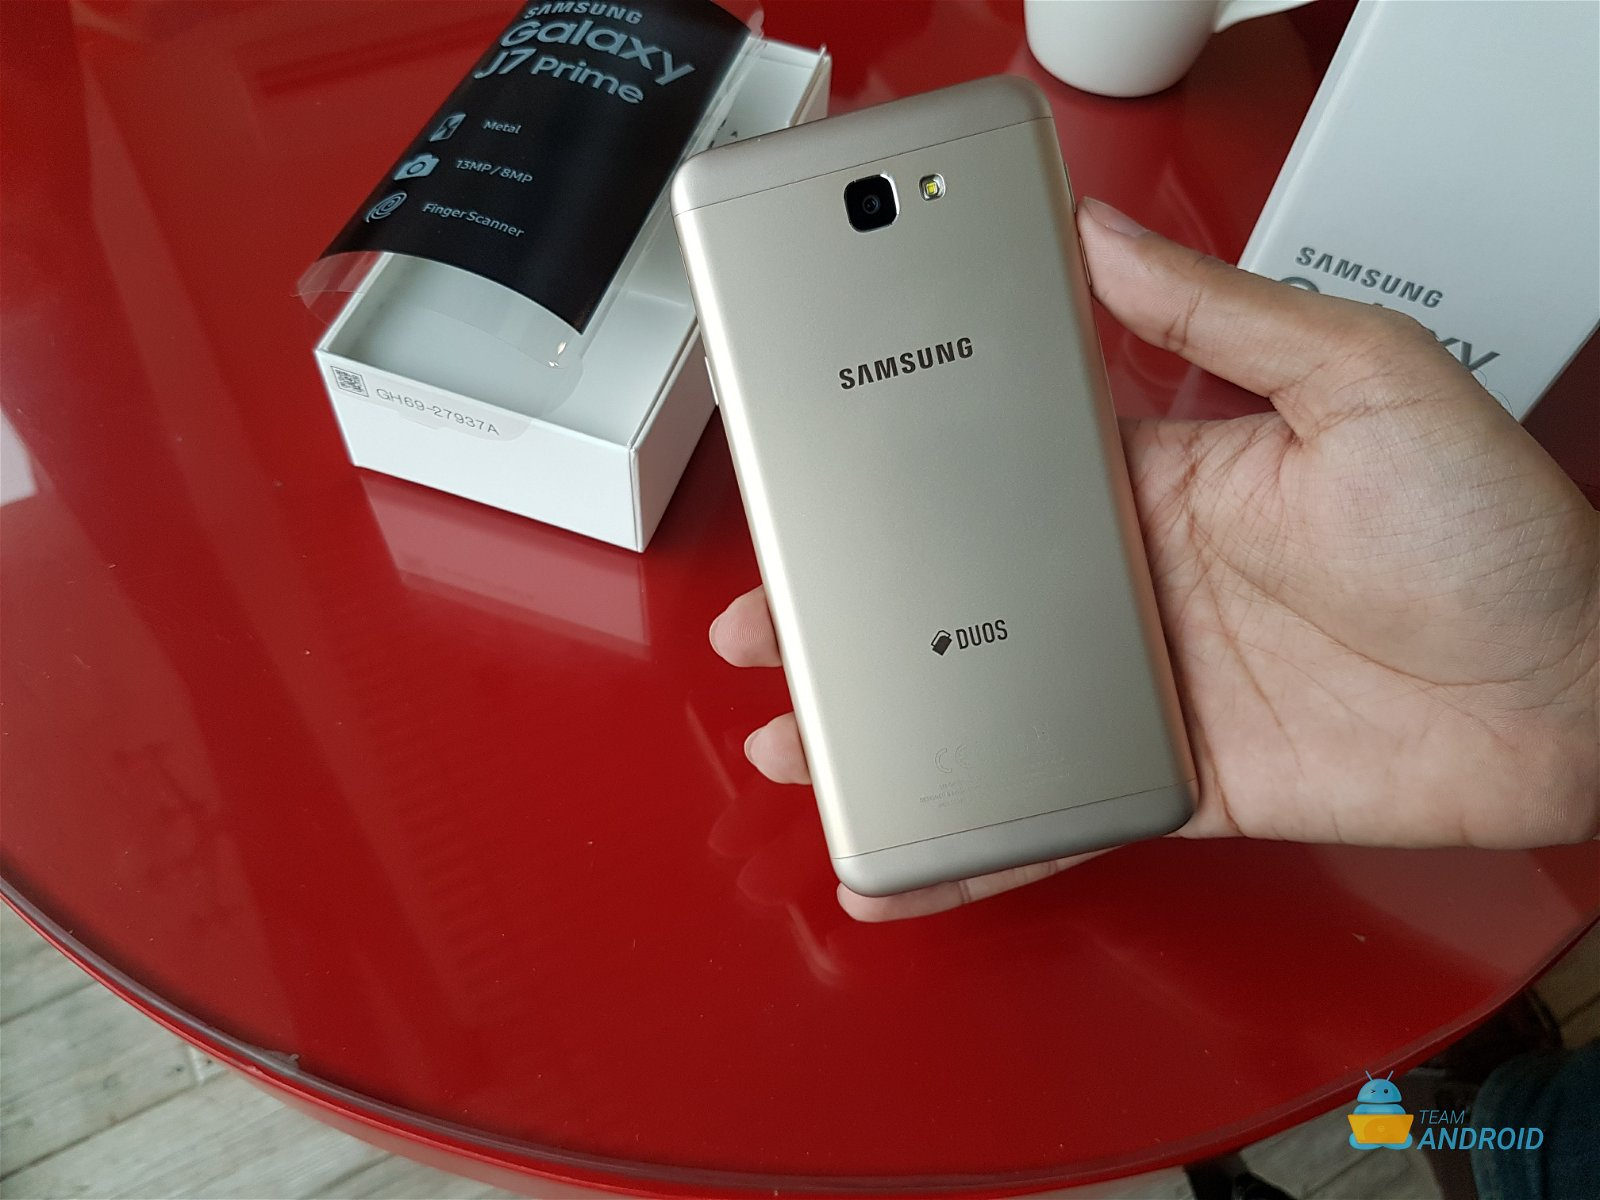 Samsung Galaxy J7 Prime: Unboxing and First Impressions